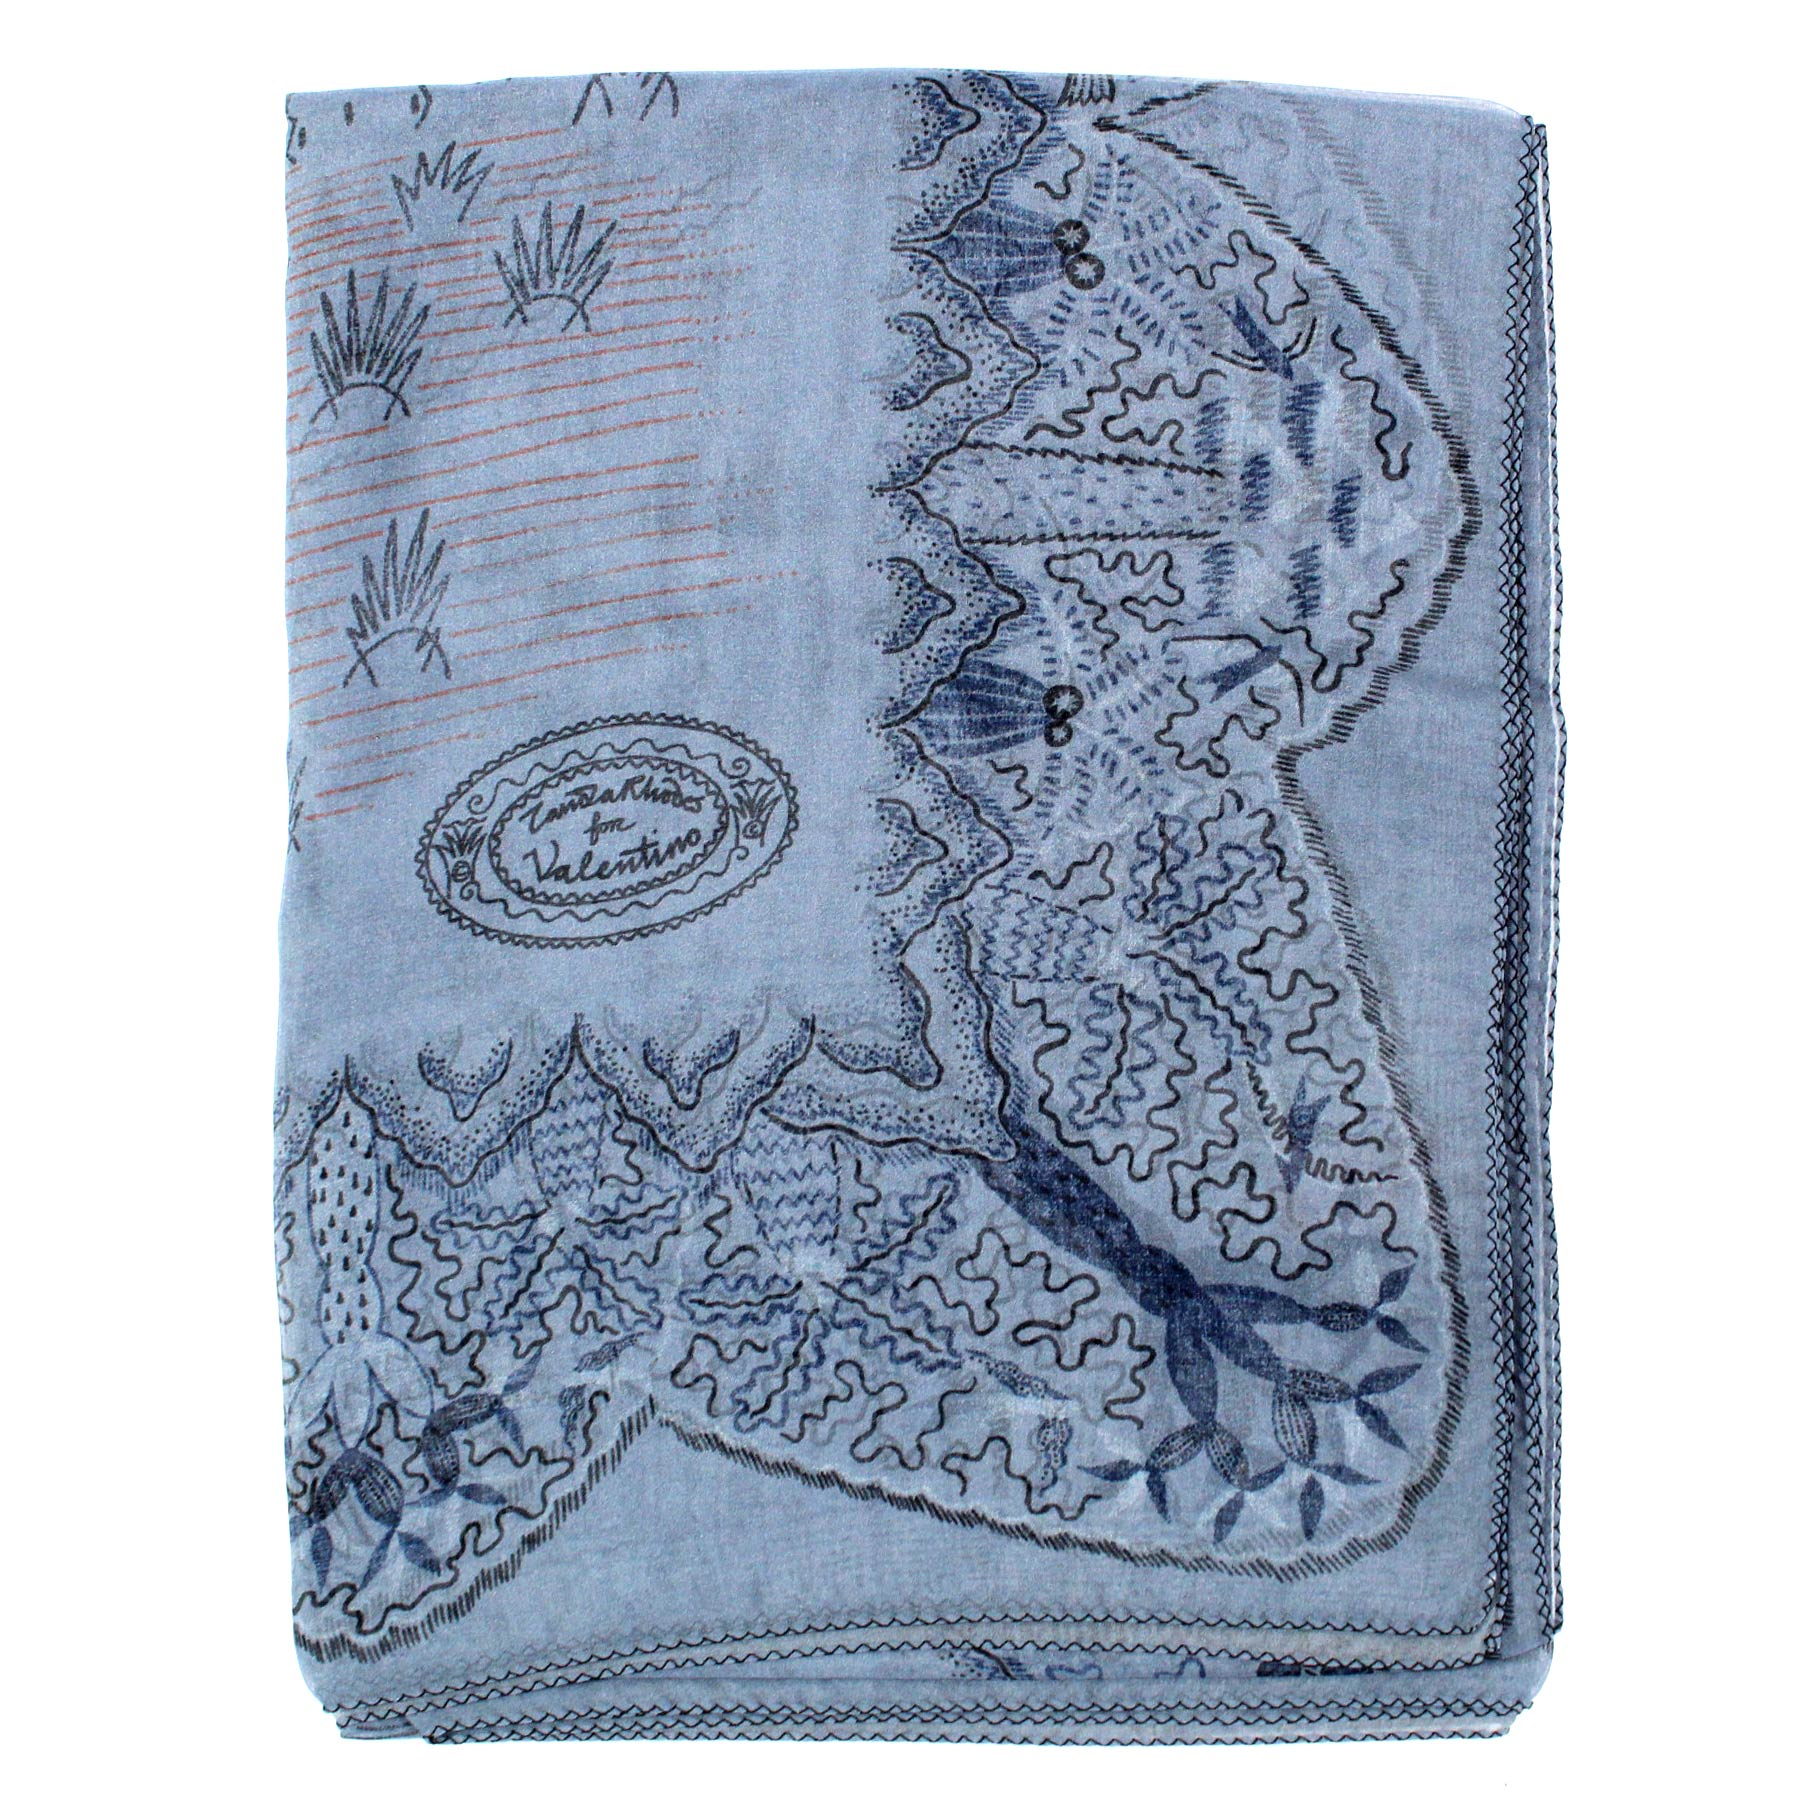 Valentino Scarf Gray Midnight Blue Hieronymus Bosch Garden Design - Extra Large Square Chiffon Silk Wrap SALE